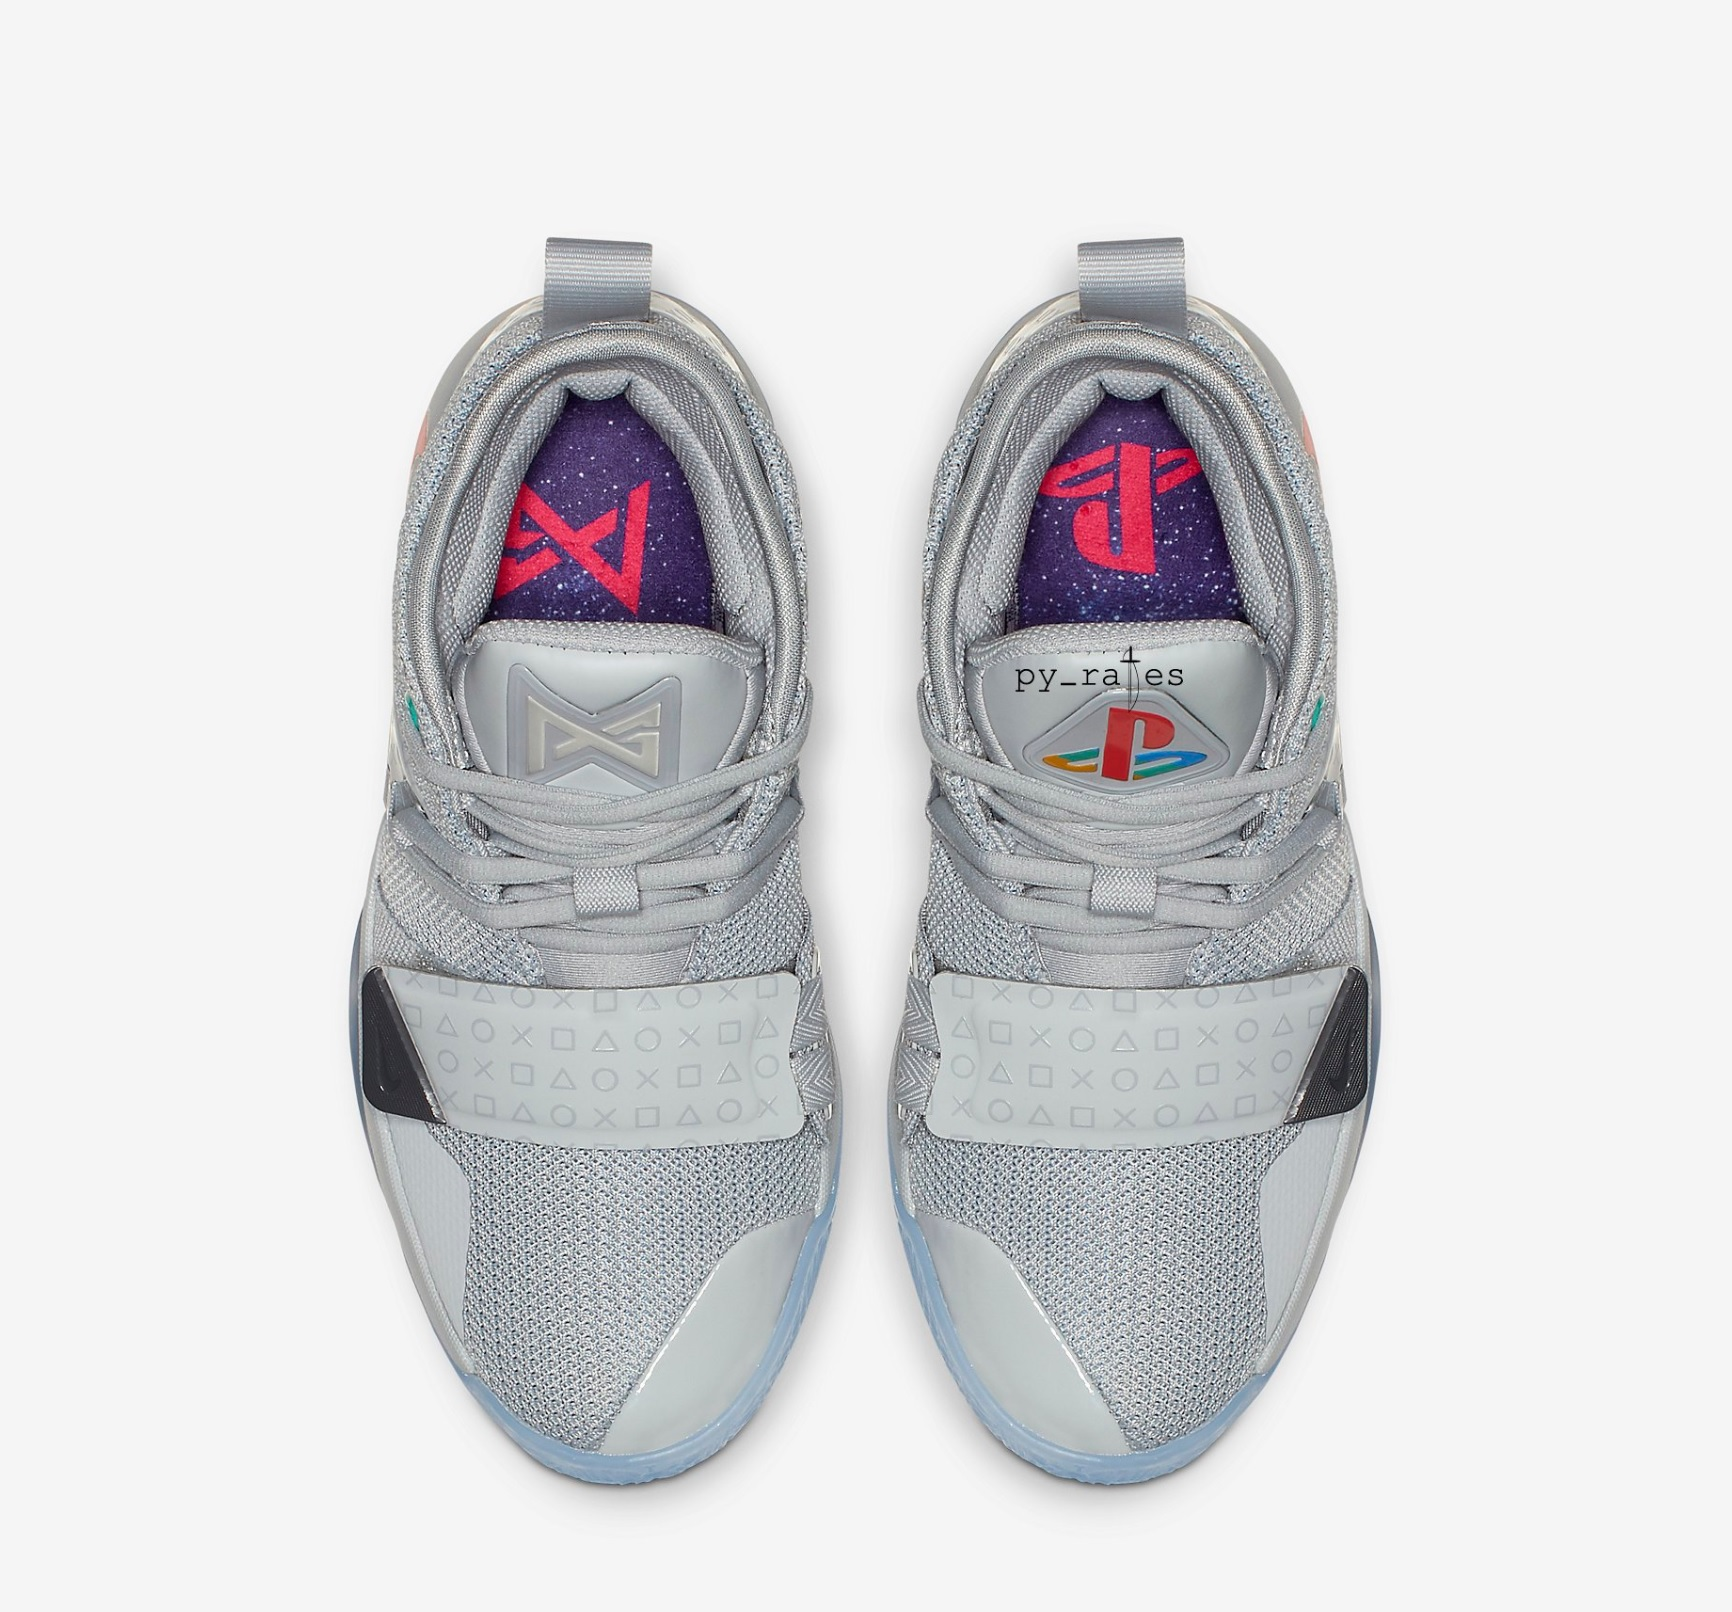 5eb583f29ed0 Nike   PlayStation Are Releasing More Special Collaboration Shoes ...